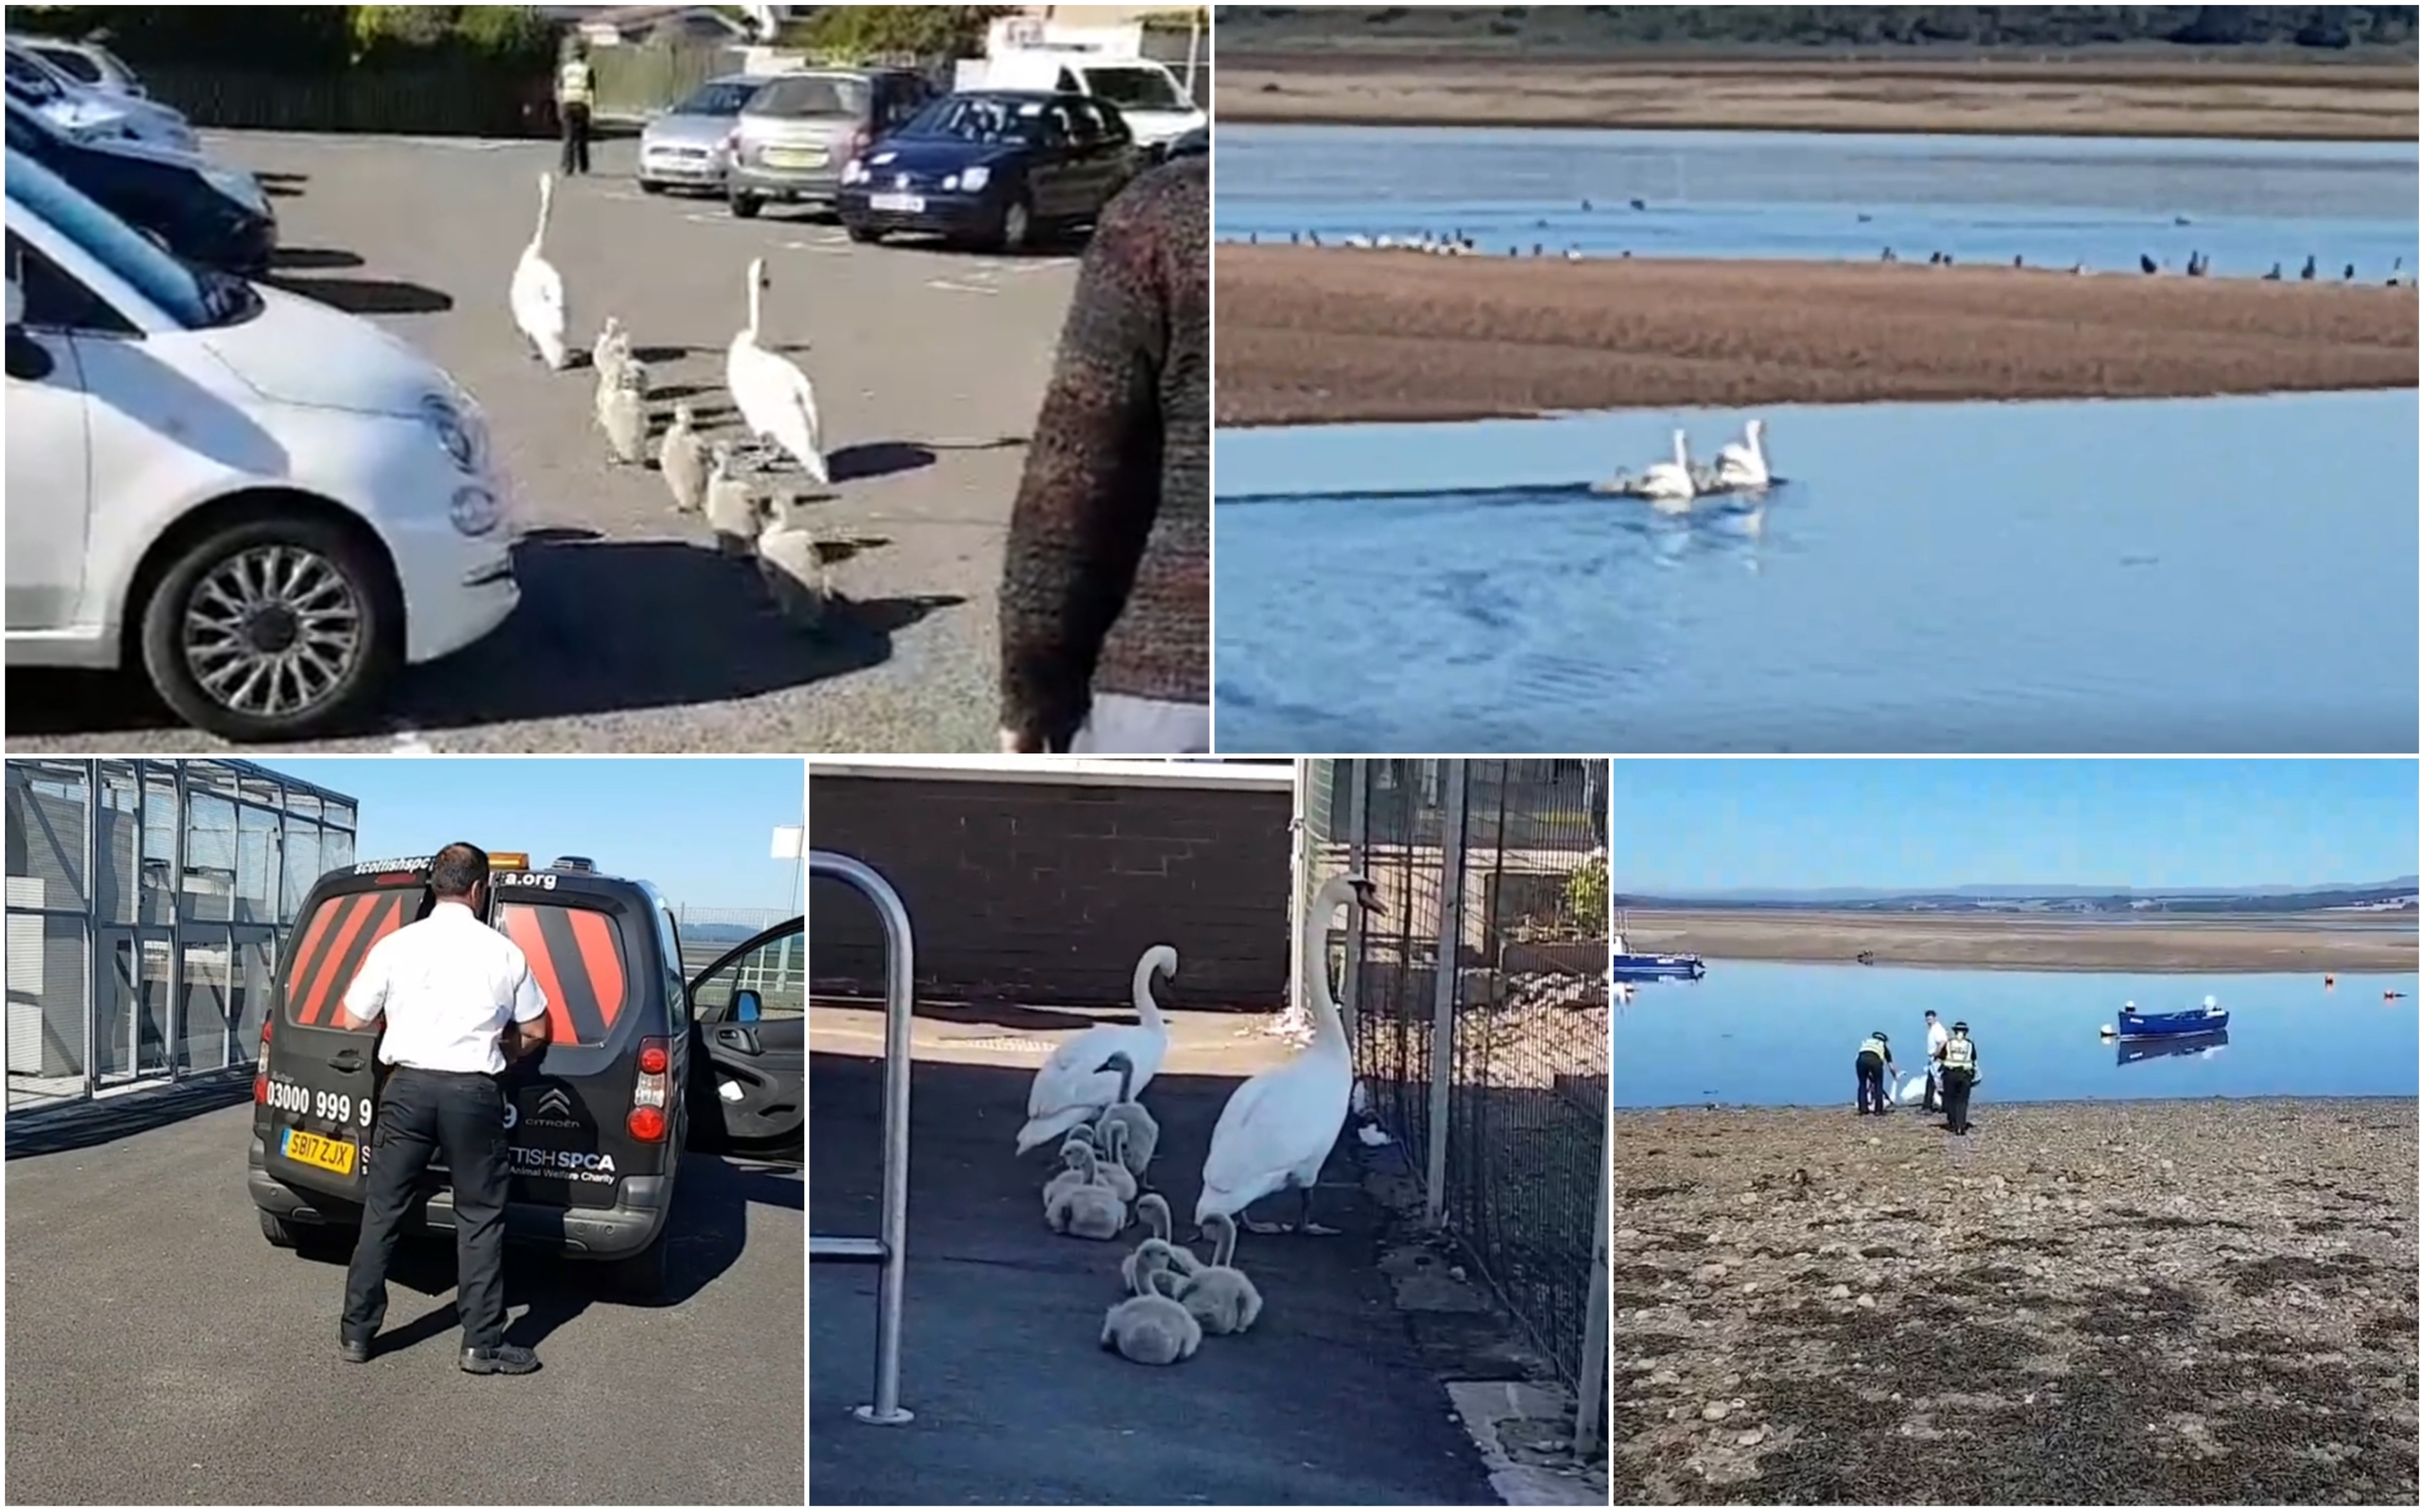 Scenes from the swans' release.